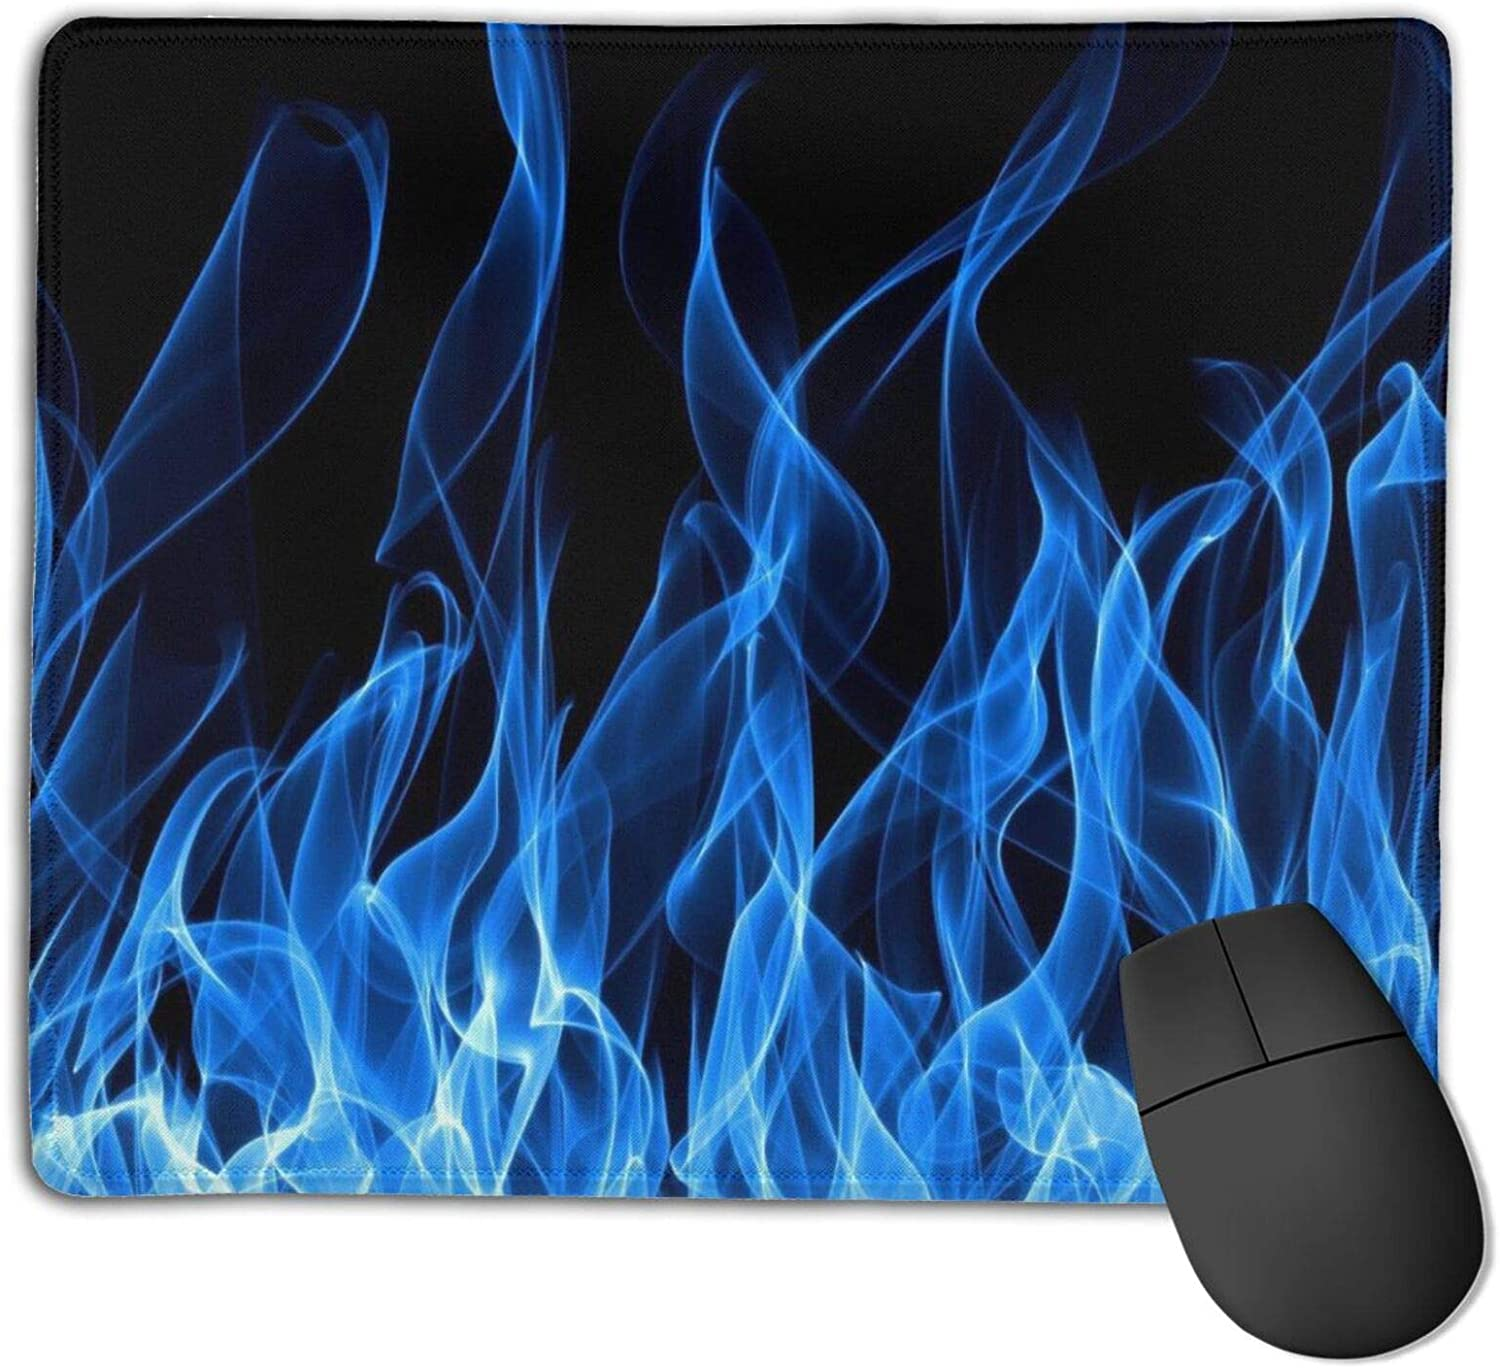 Blue Flame Customized Designs Non-Slip Rubber Base Gaming Mouse Pads for Mac,22cm×18cm, Pc, Computers. Ideal for Working Or Game